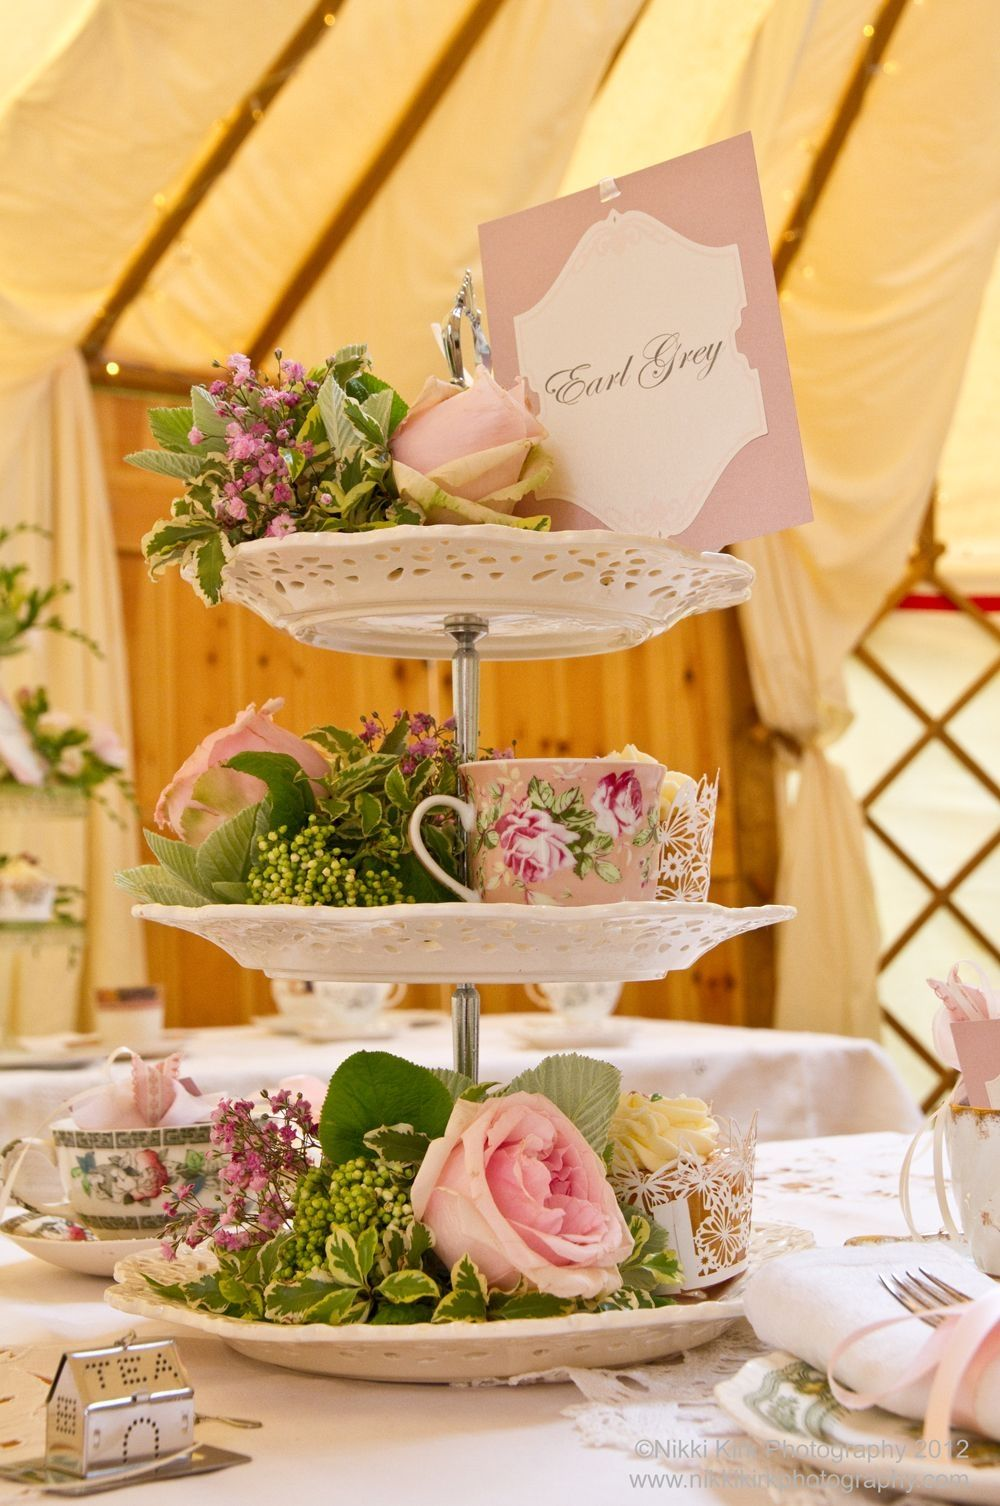 Have a lovely afternoon tea wedding at pentillie castle in have a lovely afternoon tea wedding at pentillie castle in cornwall pentillie vintage wedding centerpieceswedding table decorationsvintage junglespirit Images